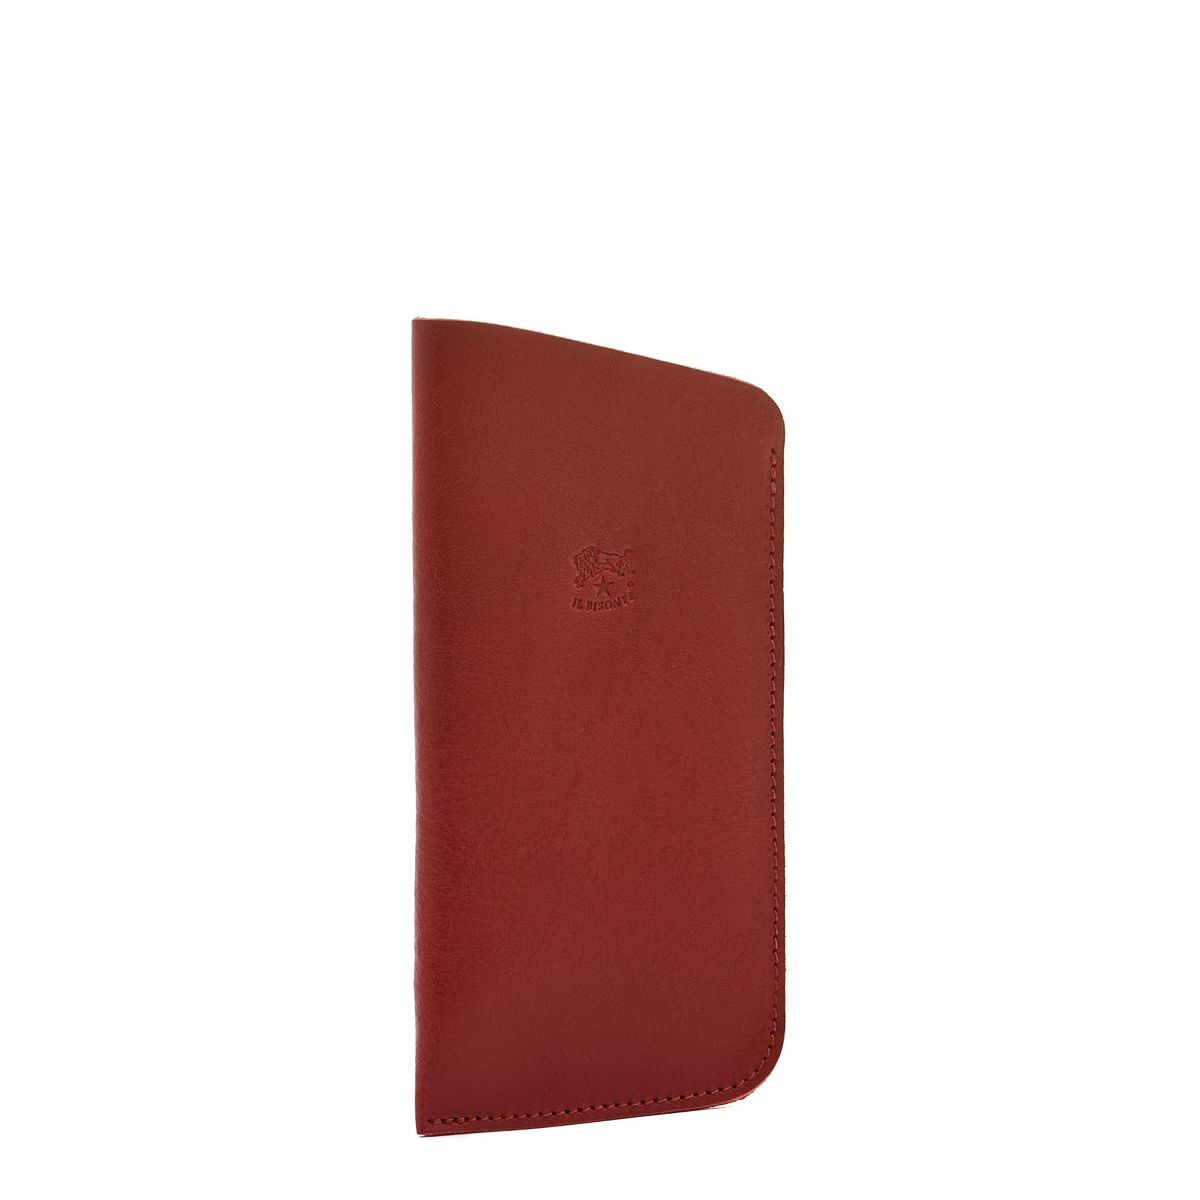 Case in Cowhide Double Leather color Red - SCA006 | Details